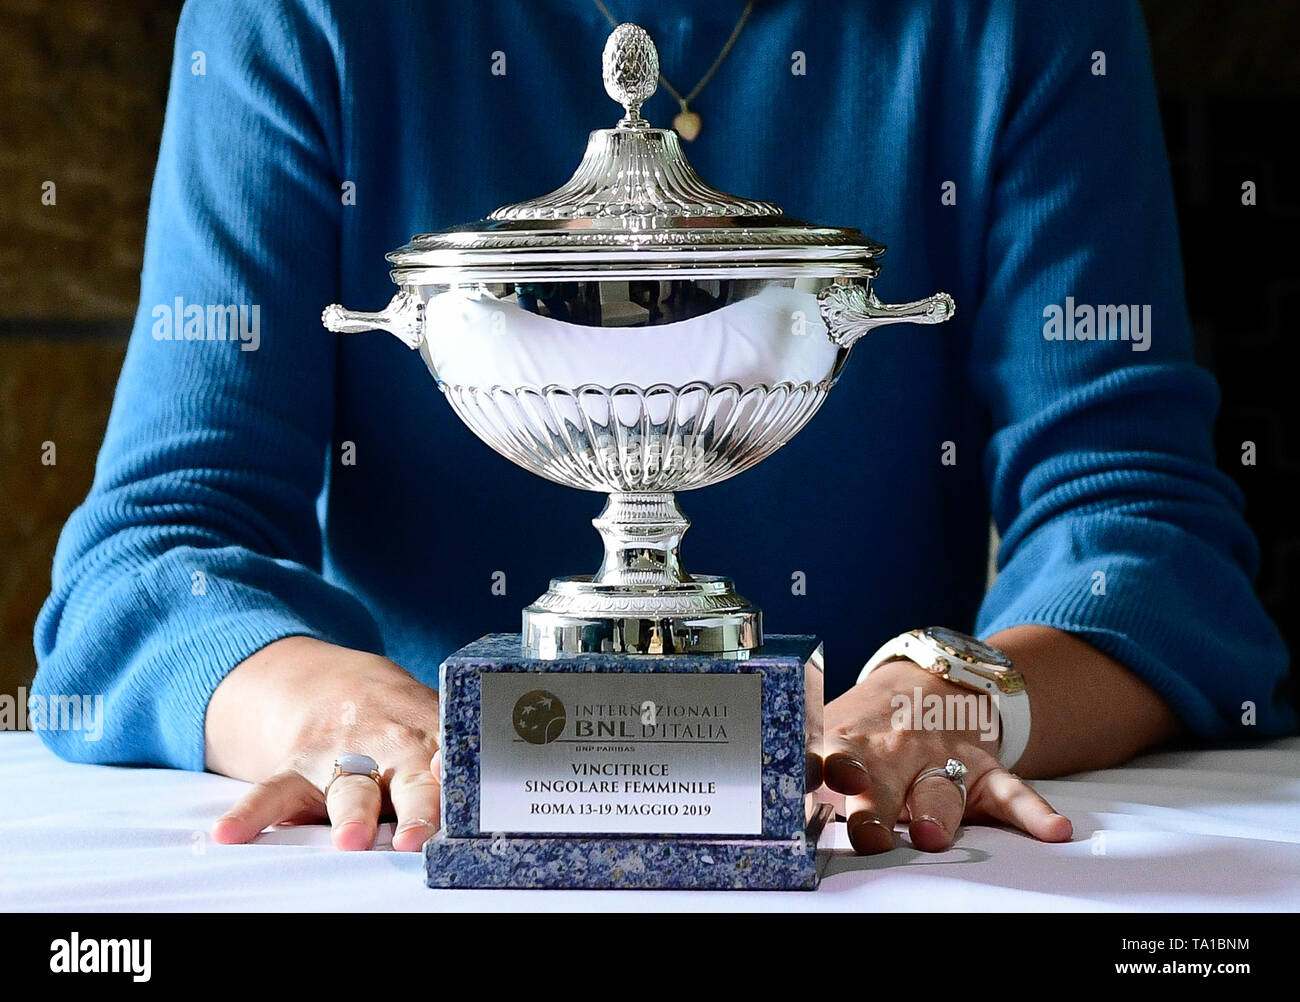 Czech tennis player Karolina Pliskova shows her trophy for victory of the Internazionali BNL d'Italia during a meeting with journalists in Prague, Czech Republic, on May 21, 2019. (CTK Photo/Roman  Vondrous) Stock Photo